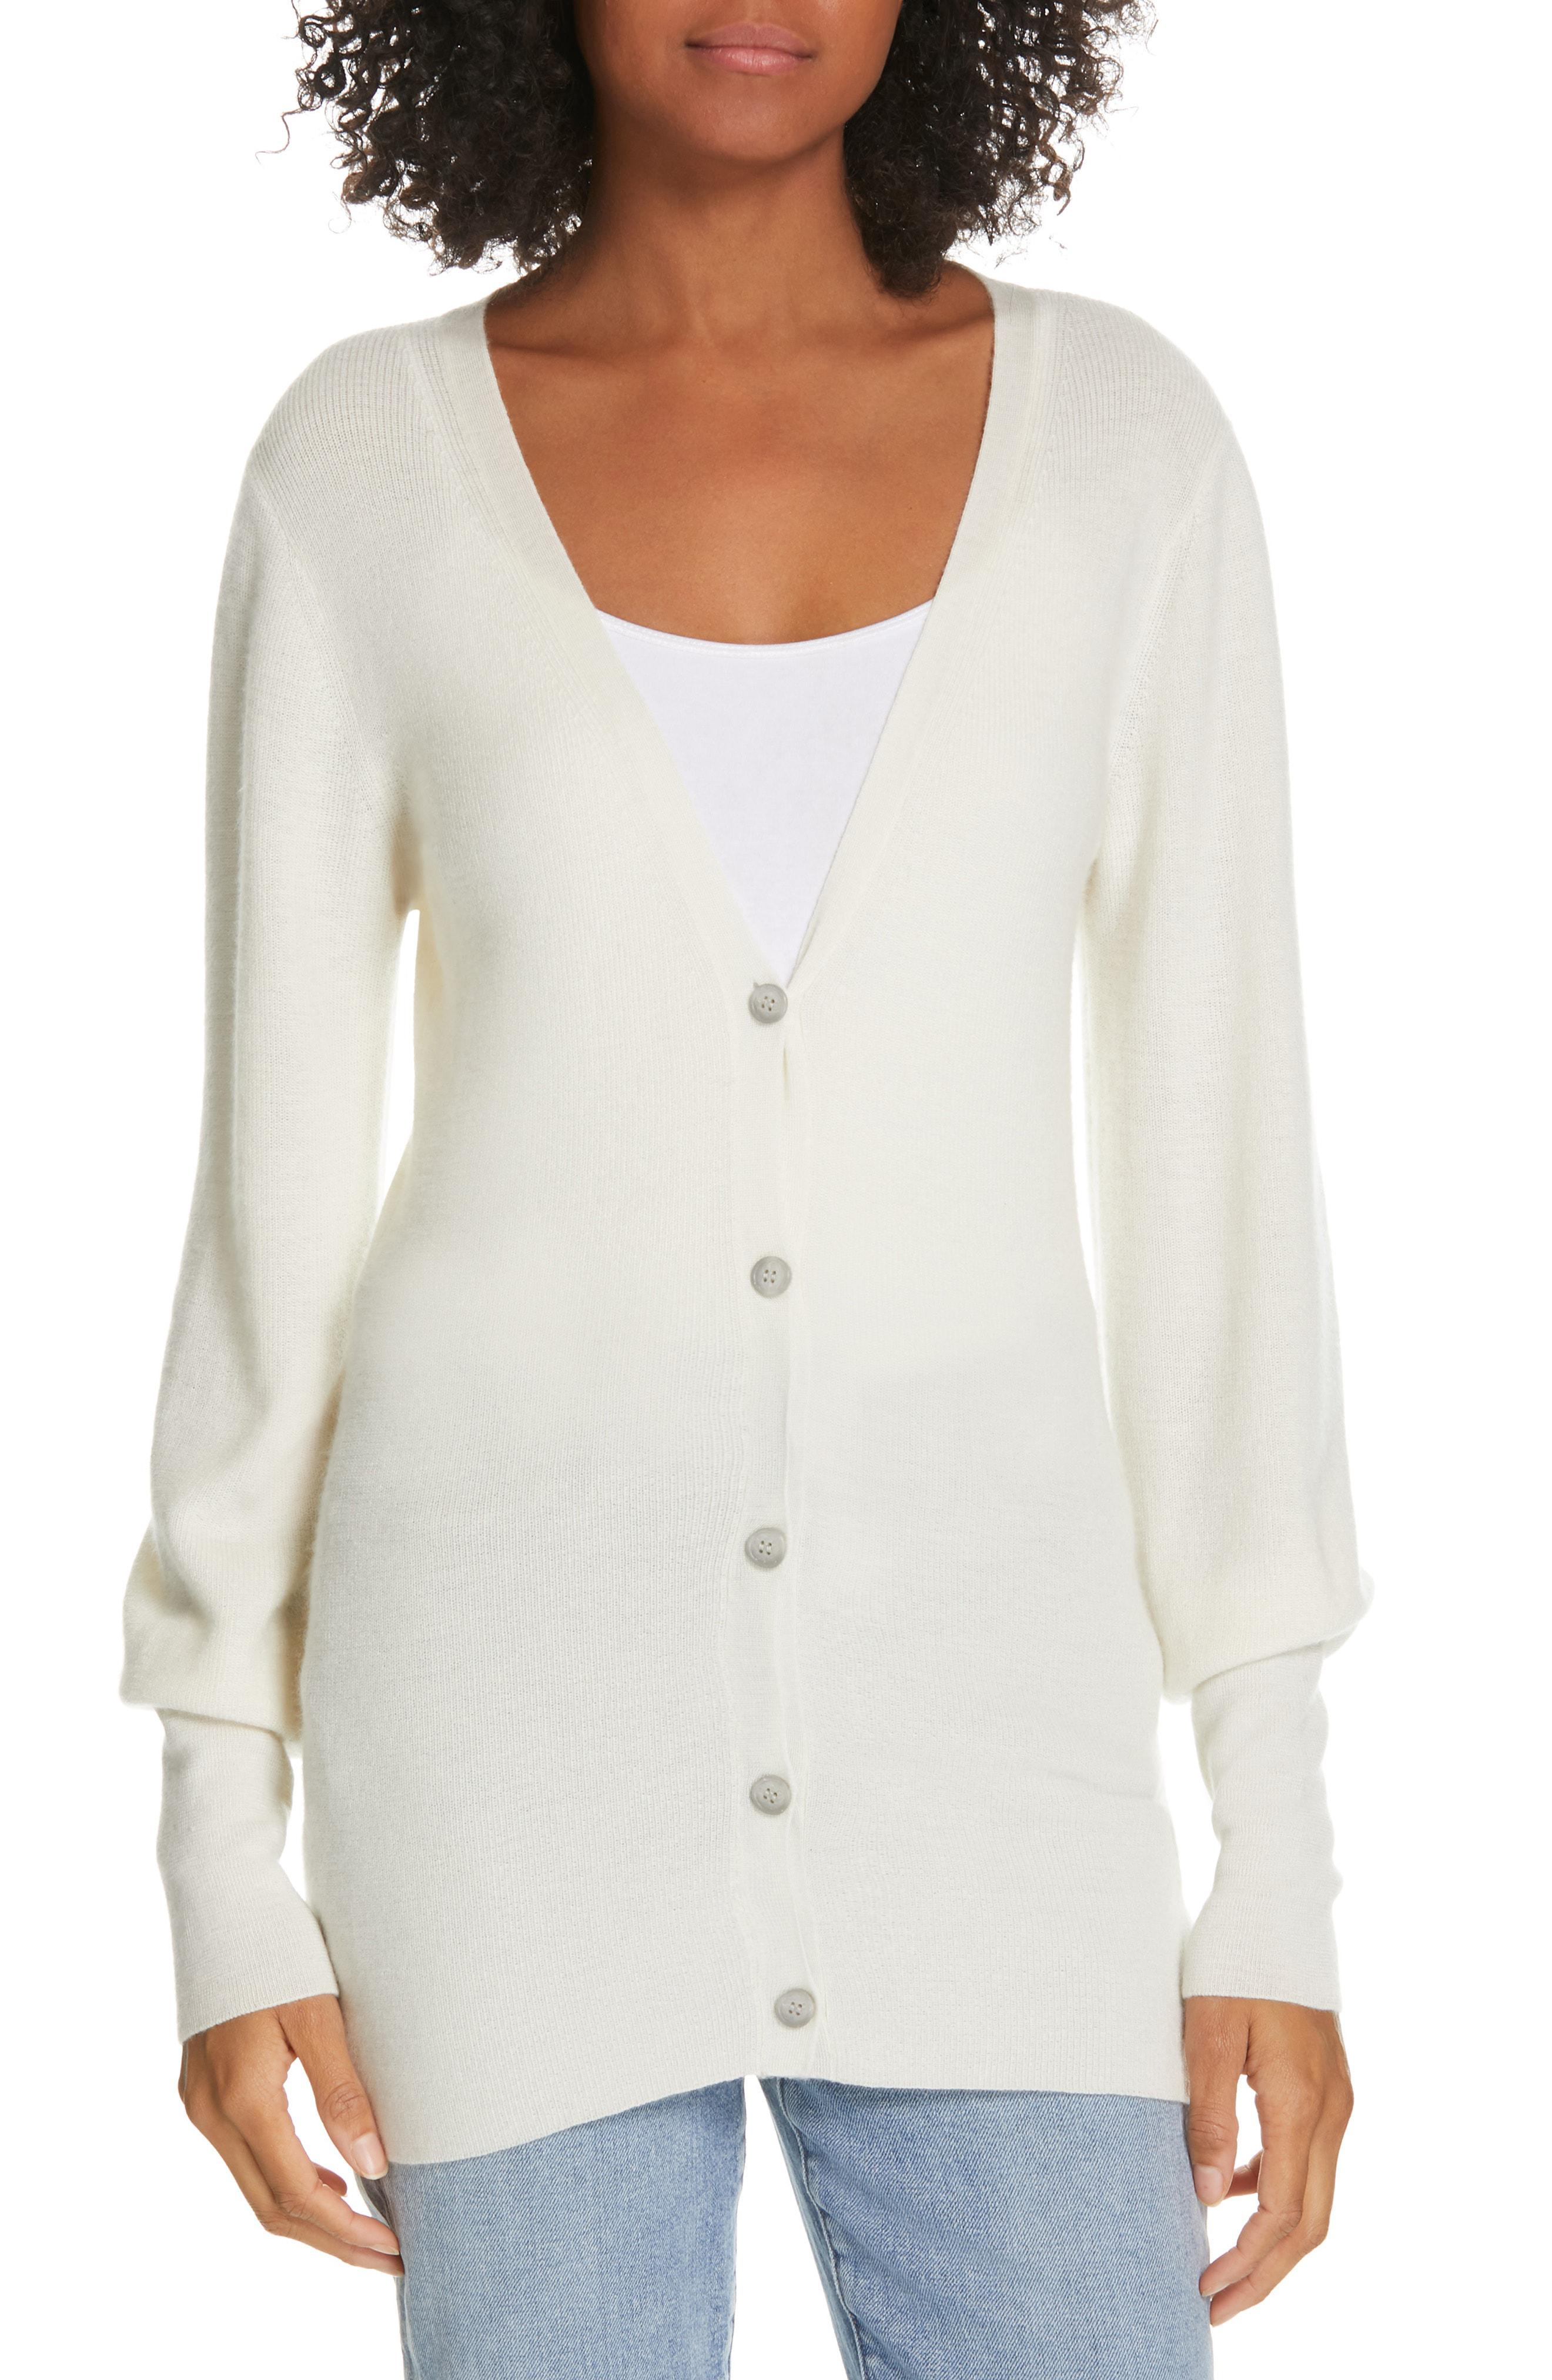 de7bbb4dd2a Theory Balloon Sleeve Cashmere Cardigan in White - Lyst